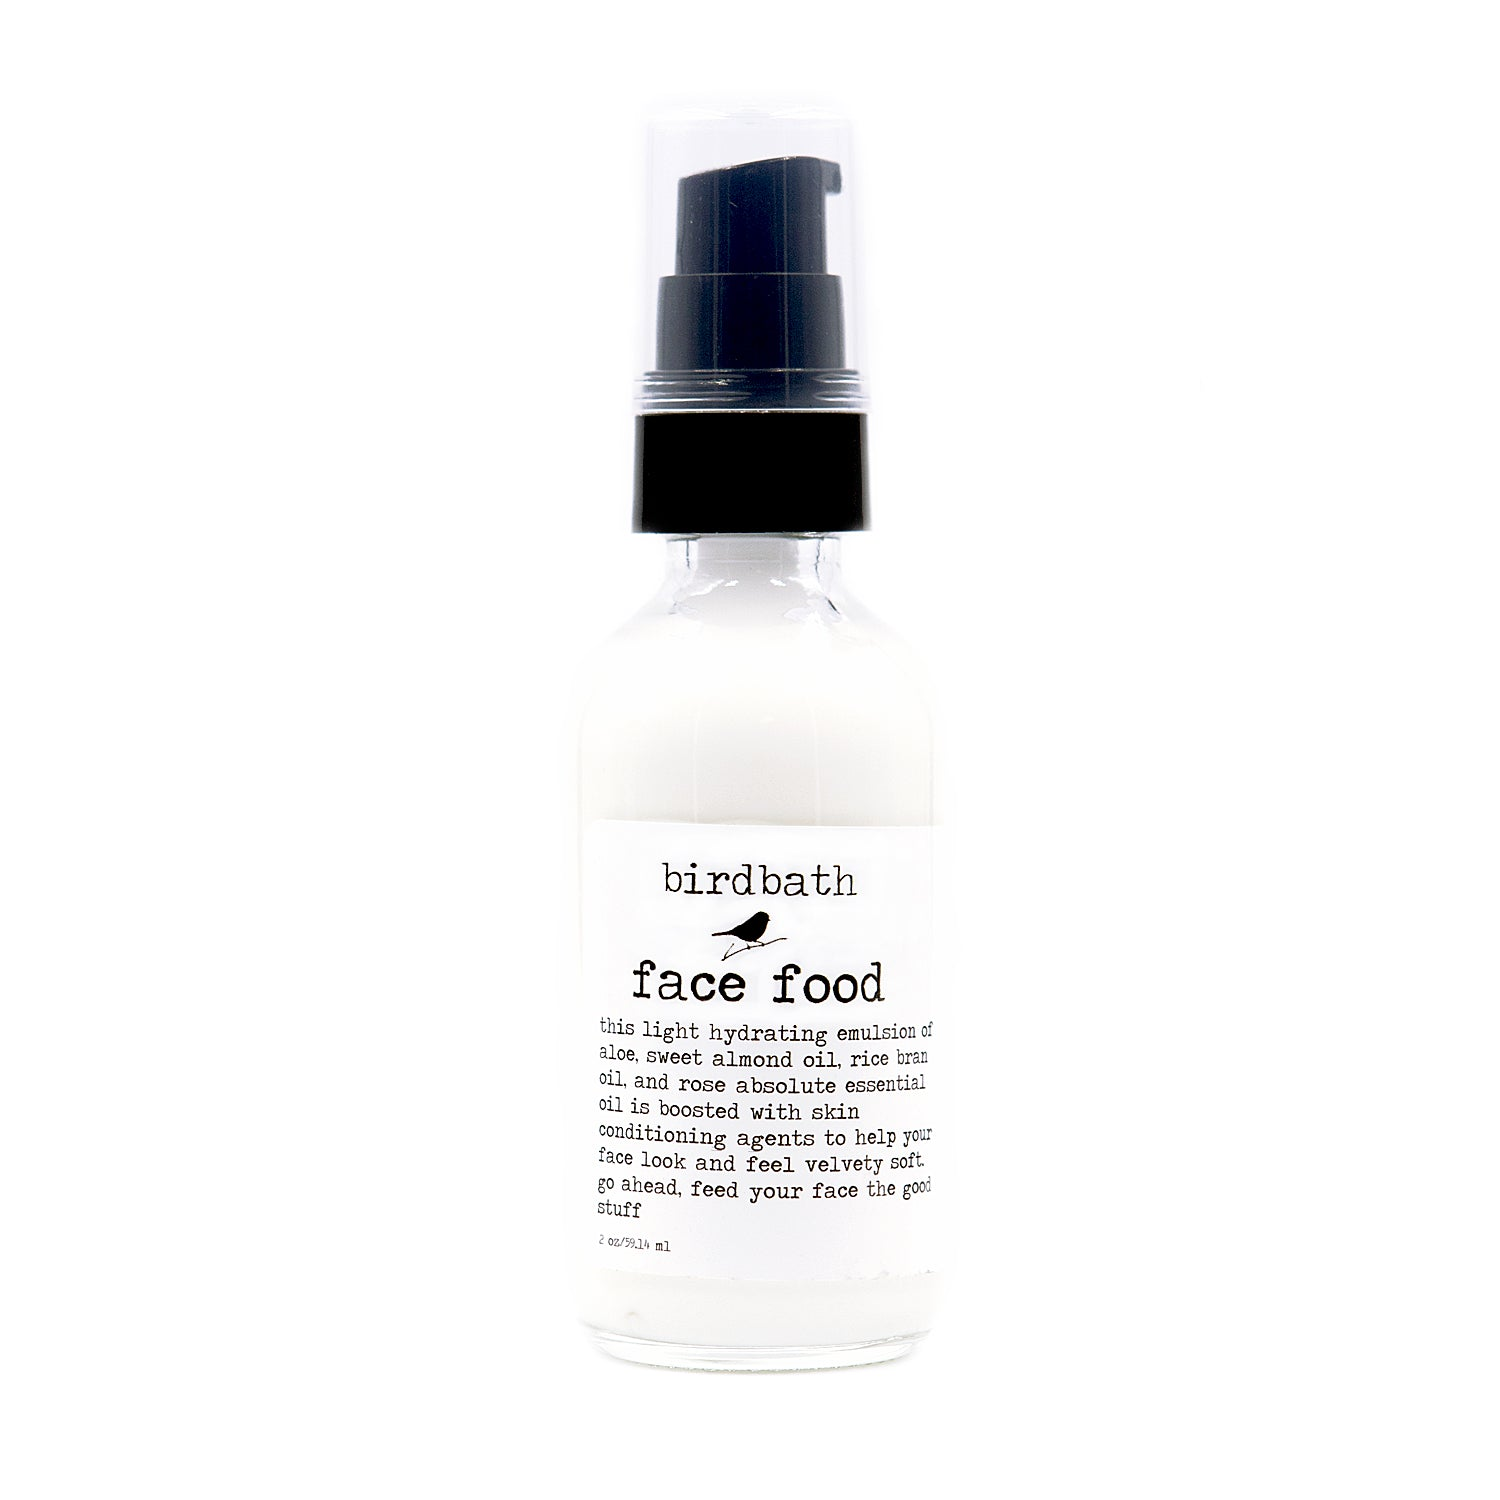 Face Food - birdbath body treats